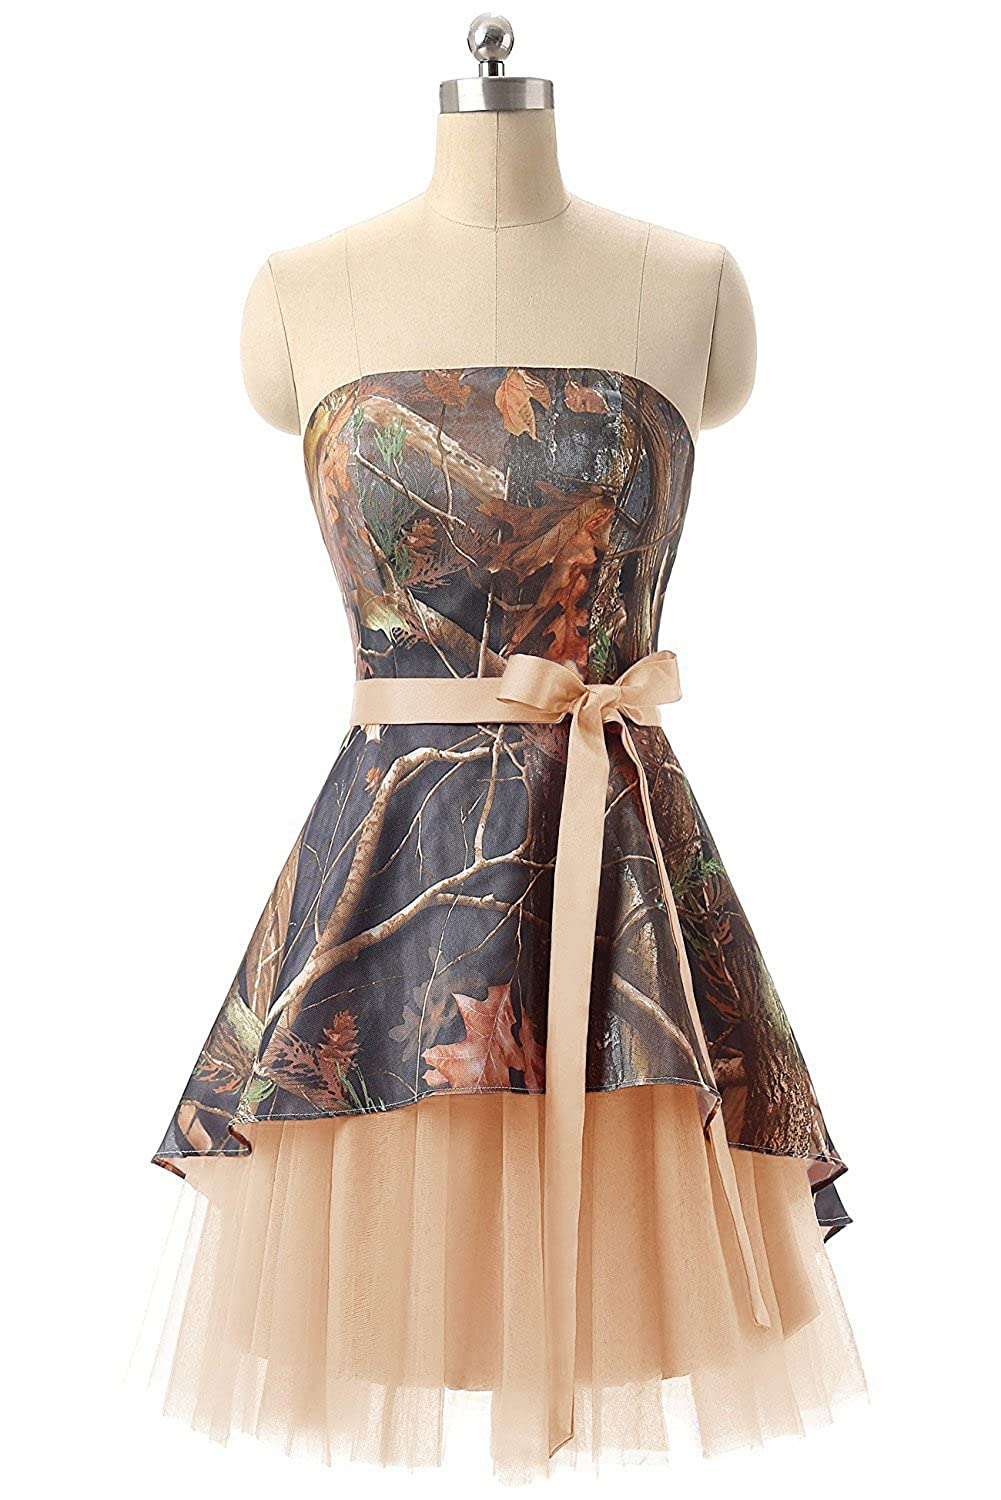 Champagne APXPF Women's Short Strapless Camo Bridesmaid Prom Dress Wedding Party Gown